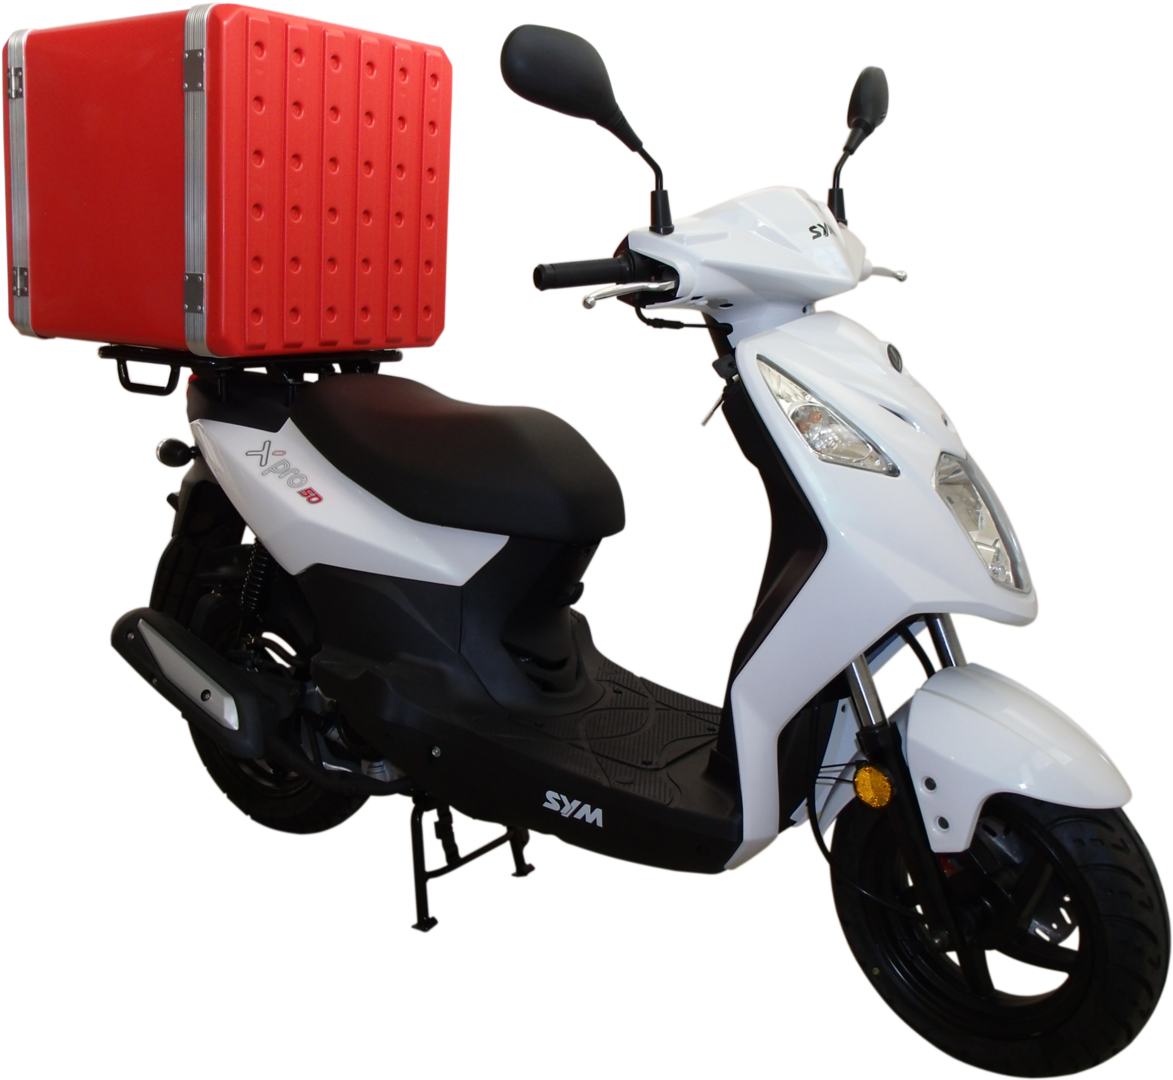 best motorcycle carrier. Scooter clipart delivery scooter